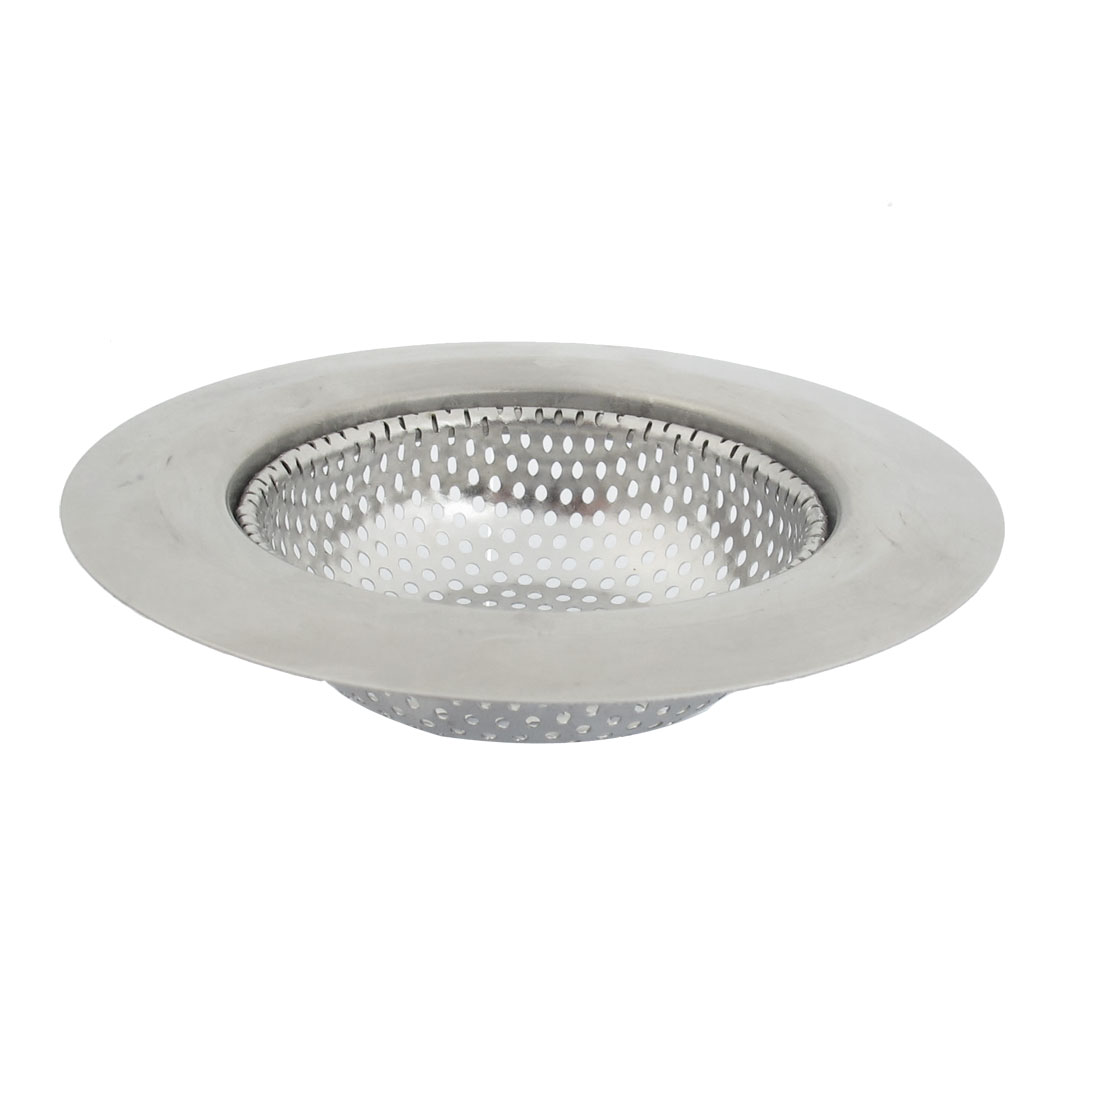 "Perforated Mesh Design 4.3"" Top Diameter Floor Sink Drain Strainer"